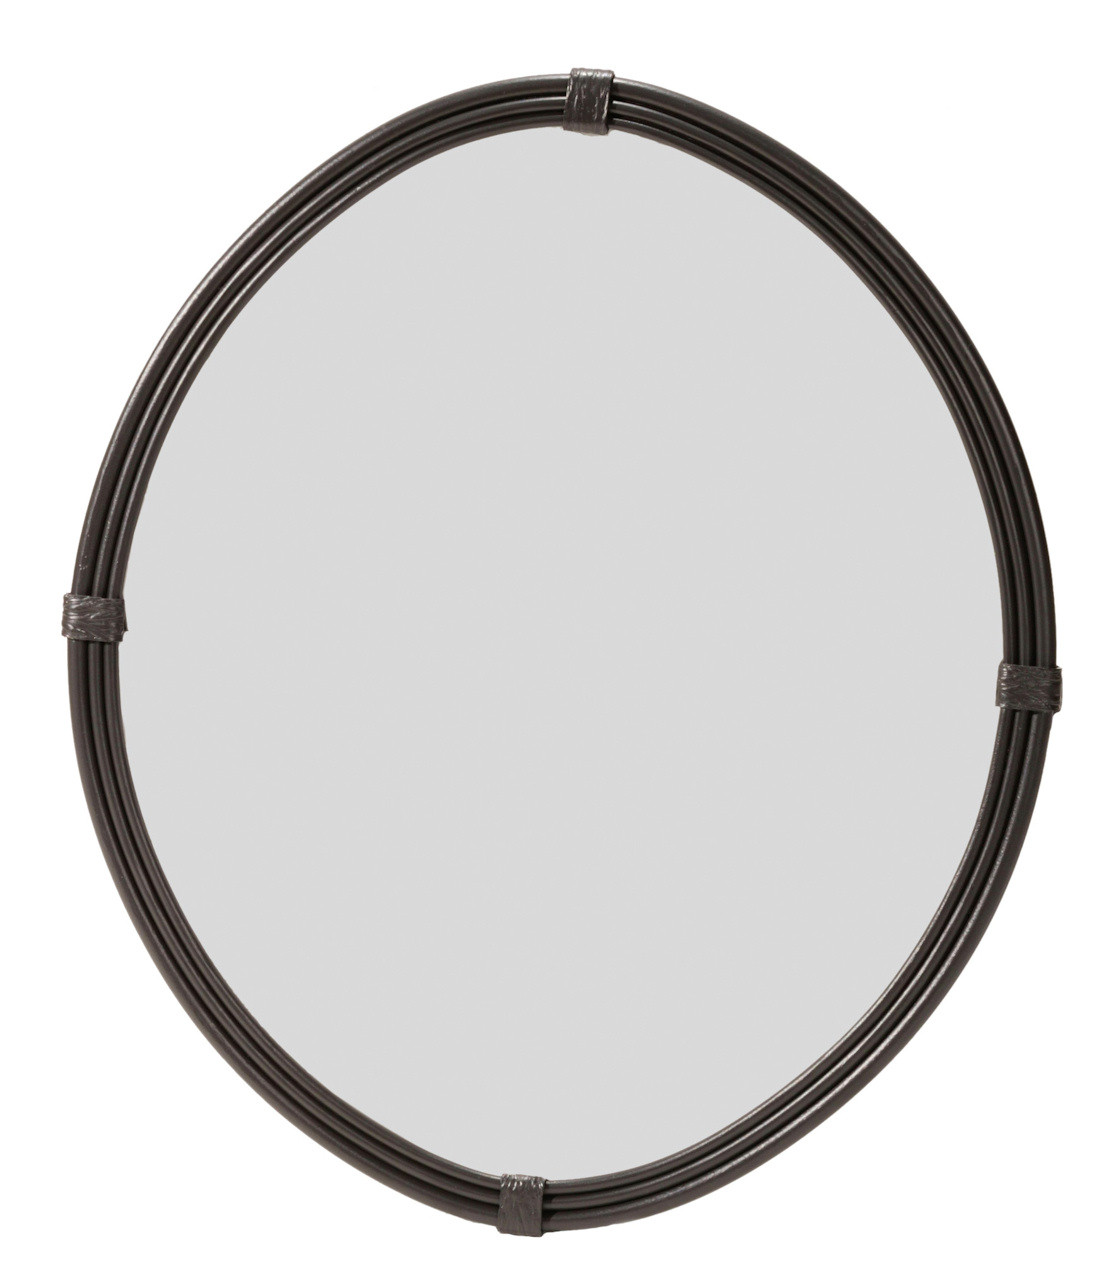 Queensbury Oval Hand Forged Iron Wall Mirror Small